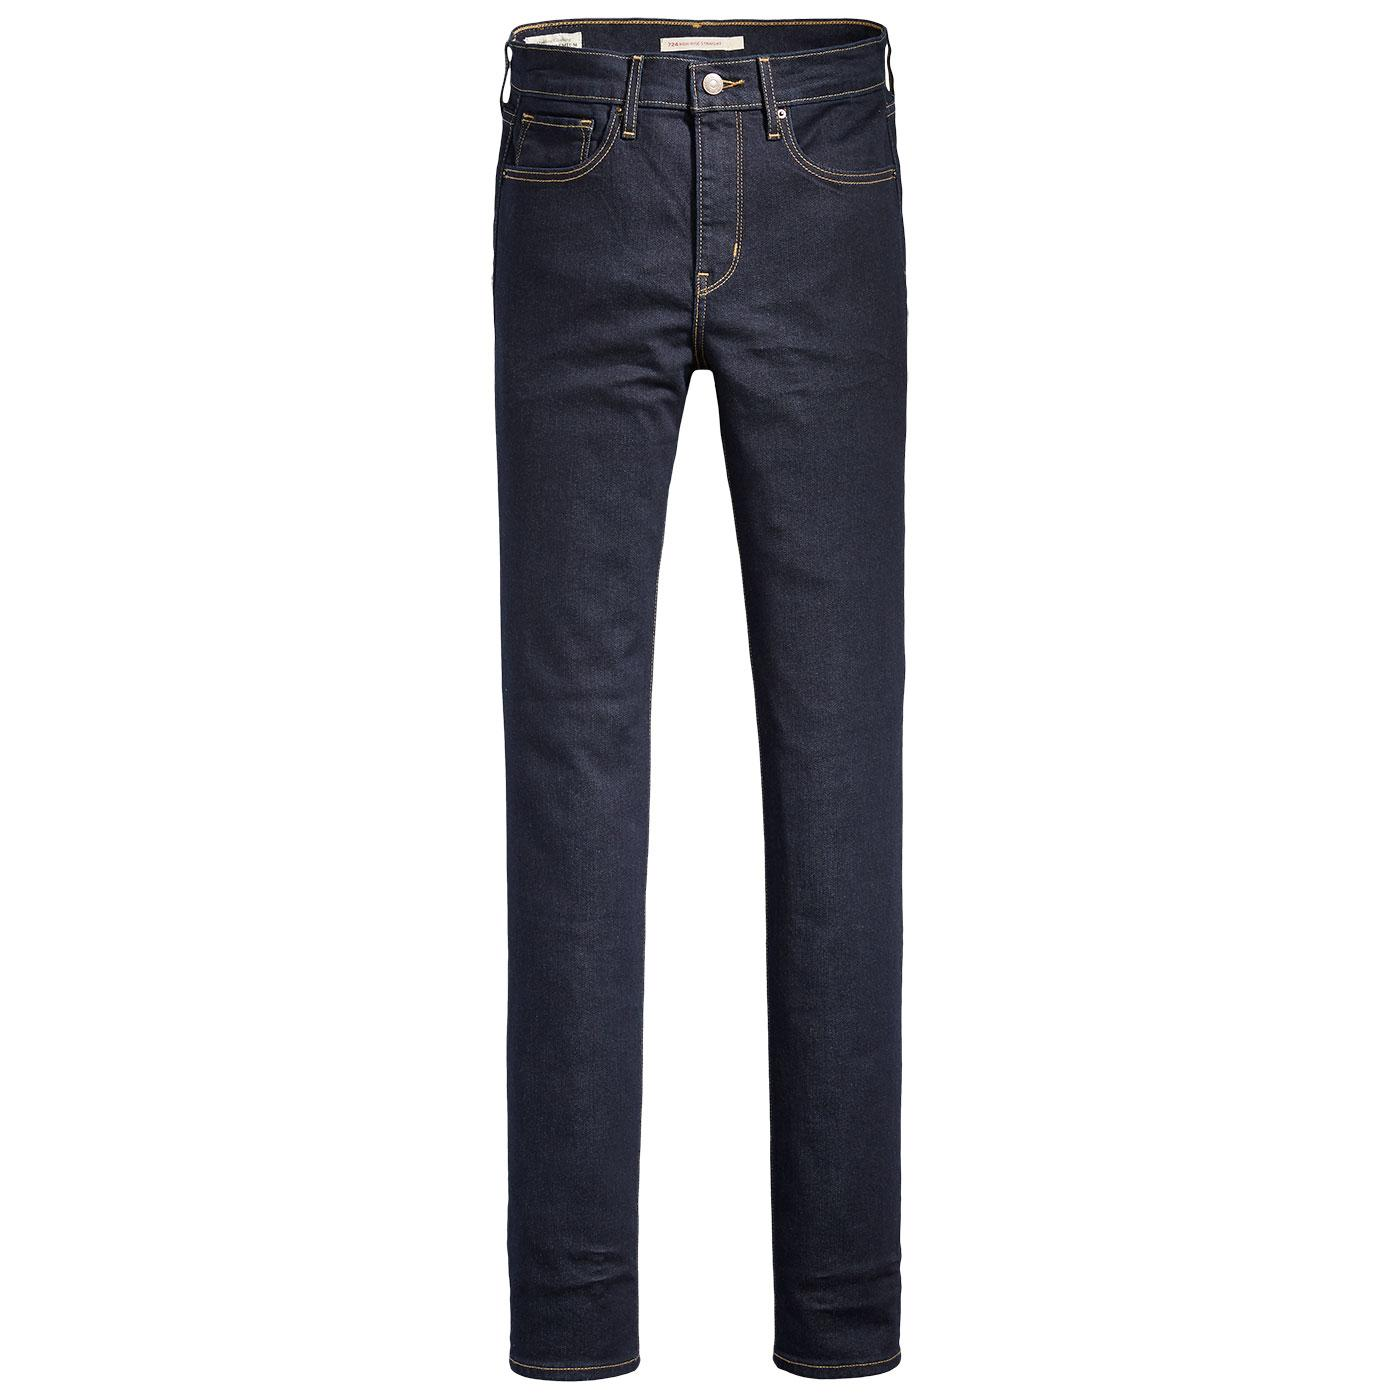 LEVI'S Women's 724 High Rise Straight Jeans - Blue